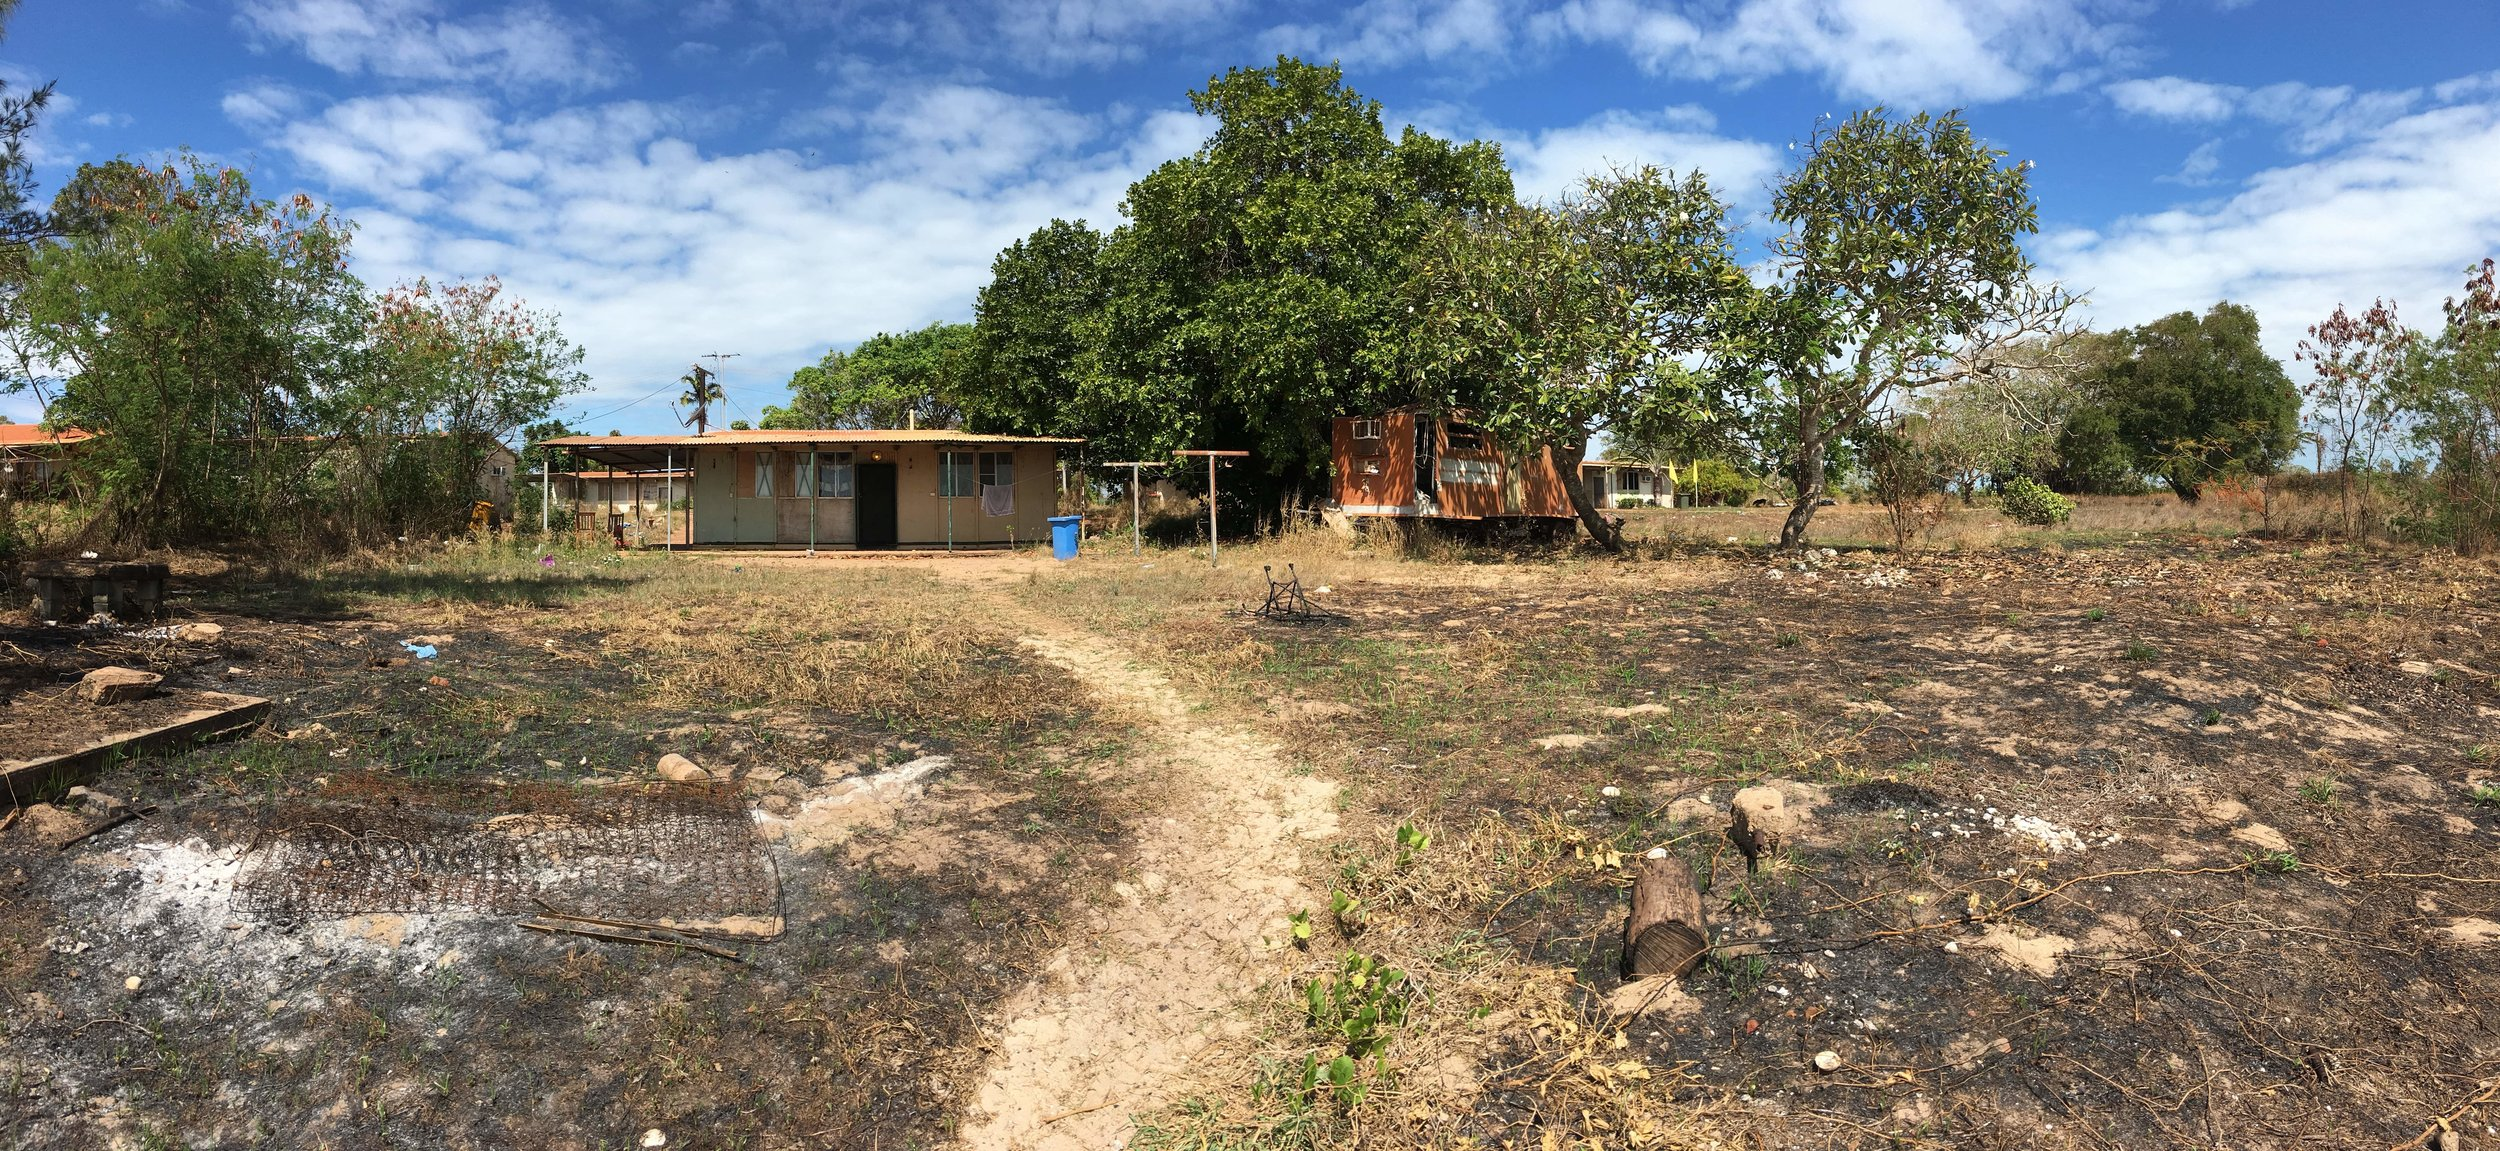 My home for 10 days at Wallaby Beach, 10km from the nearby town of Nhulunbuy. These houses were built by a mining company thirty odd years ago using asbestos and concrete. All in disrepair, they are nestled in paradise.